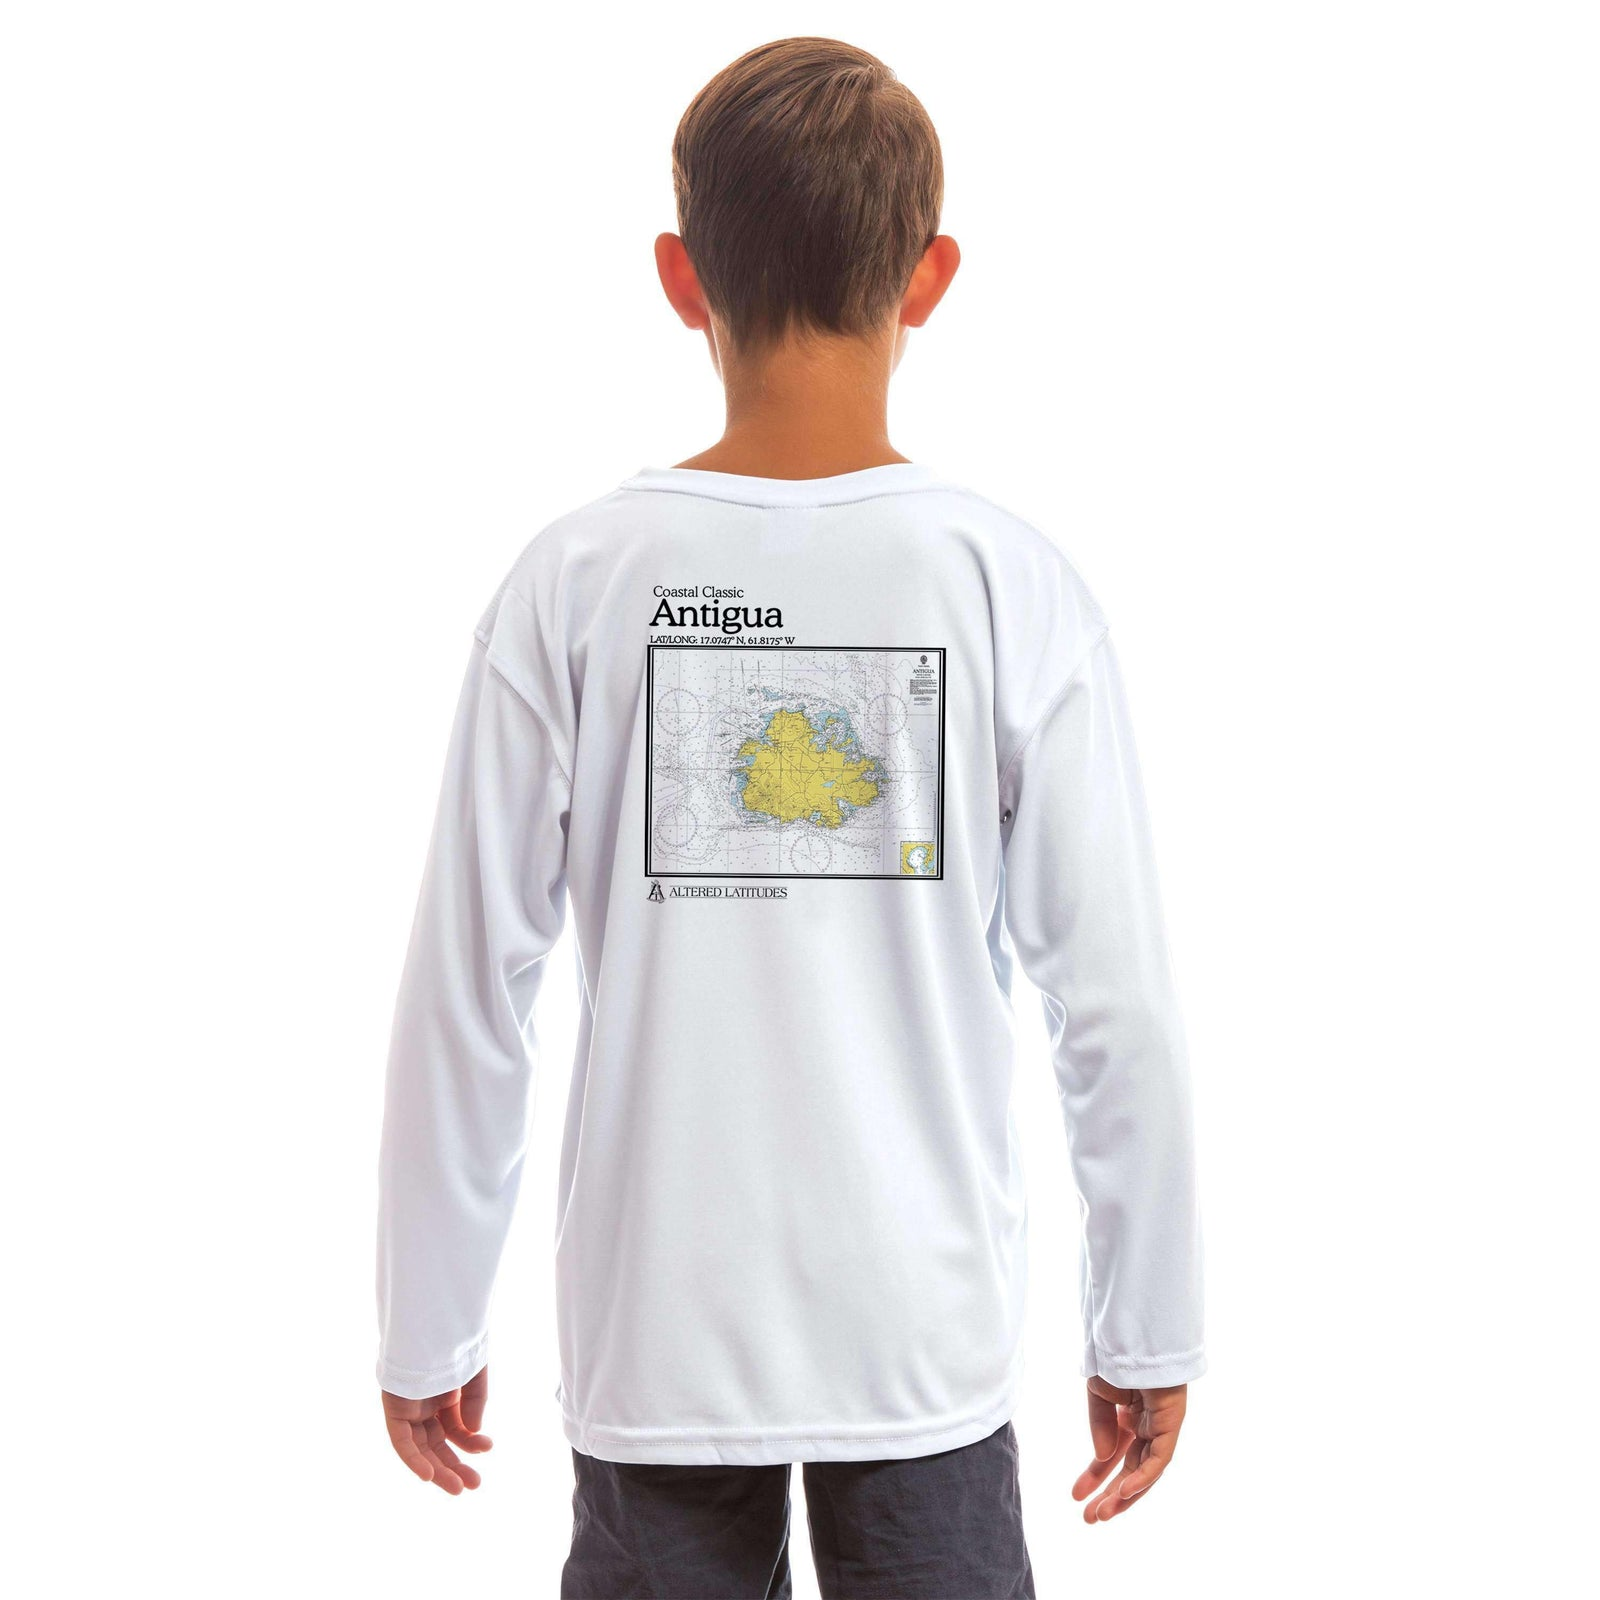 Coastal Classics Antigua Youth UPF 5+ UV/Sun Protection Long Sleeve T-Shirt - Altered Latitudes